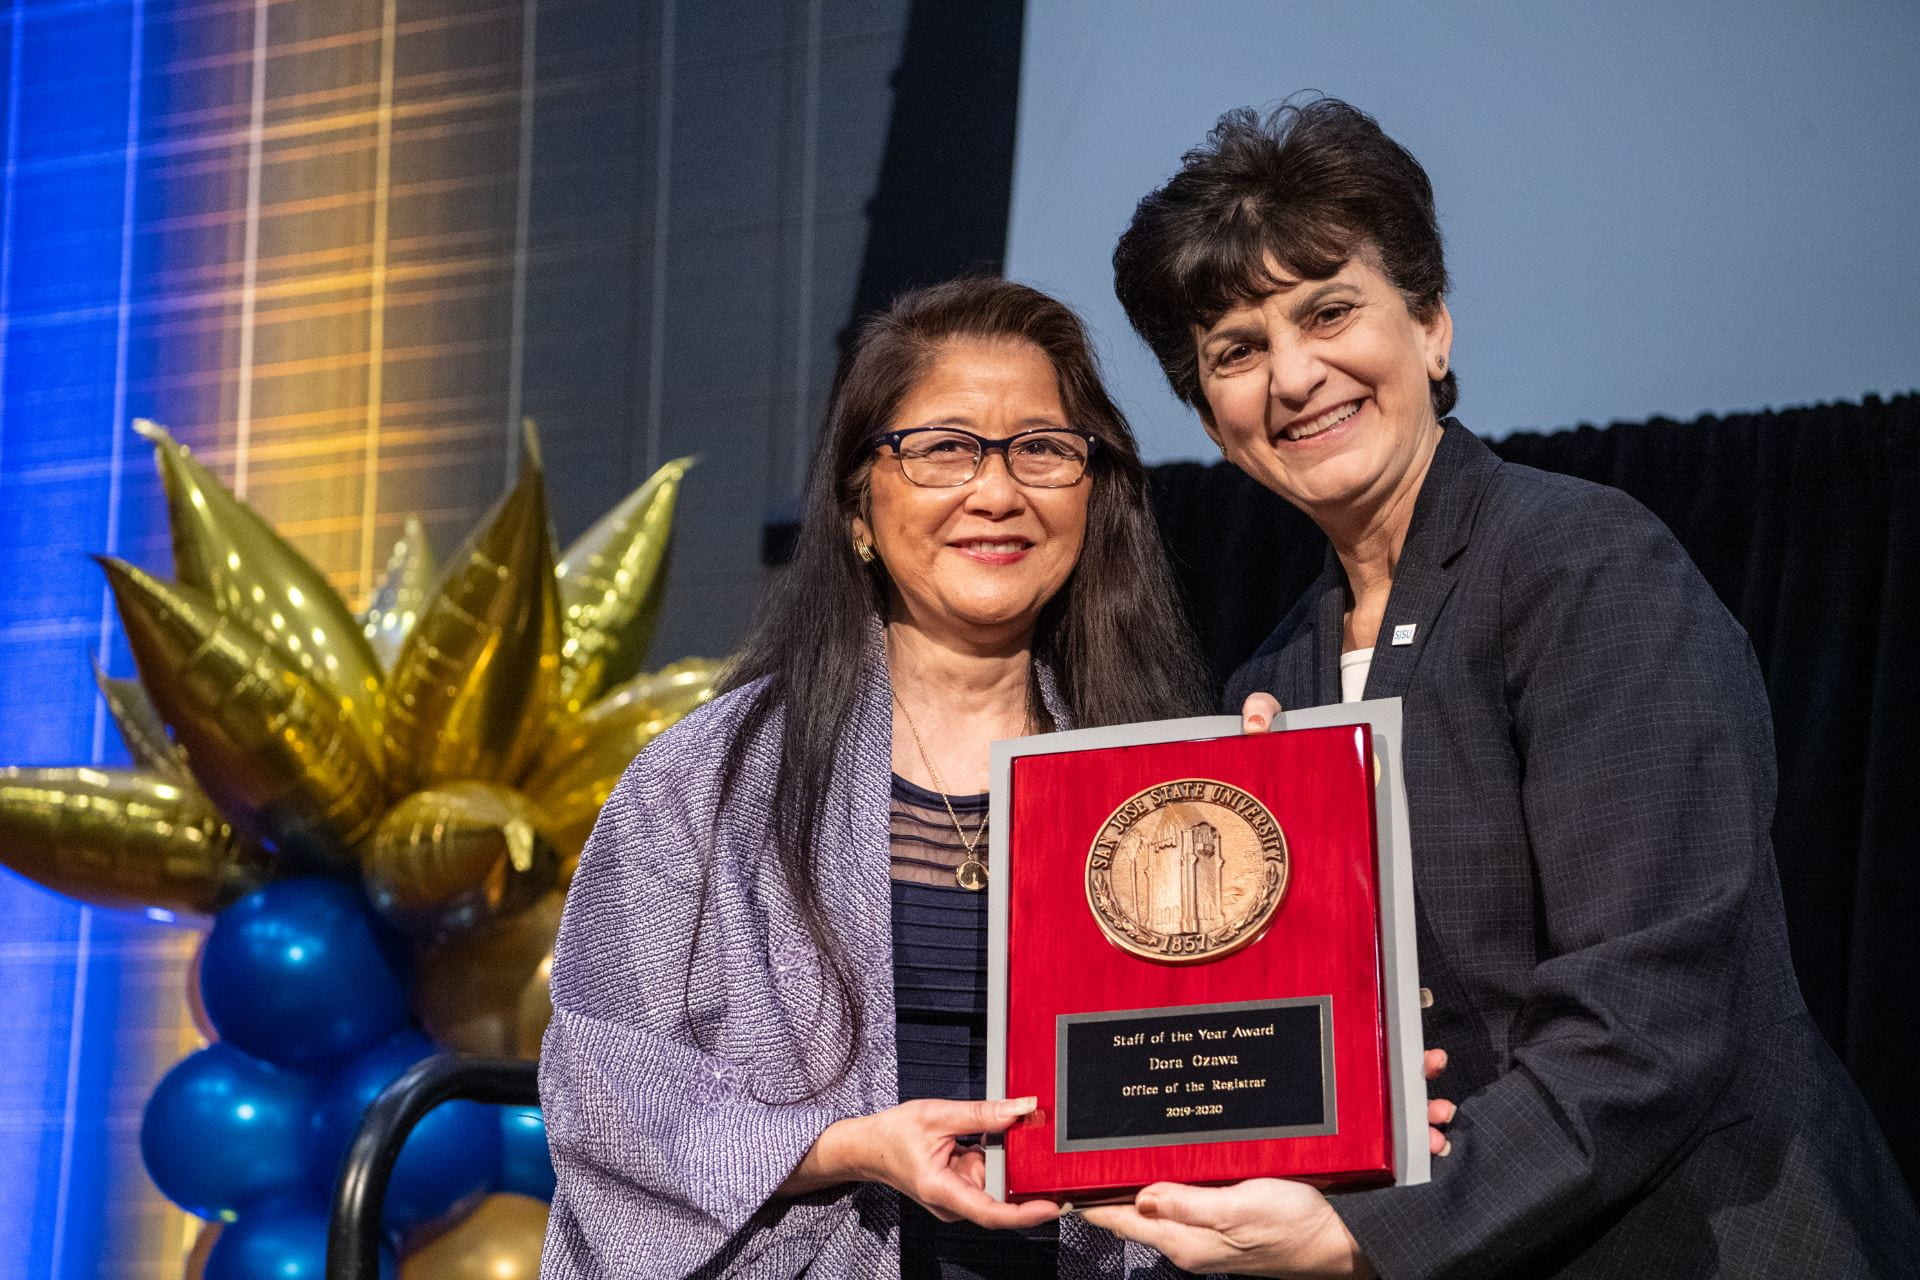 Dora Ozawa and President Papazian